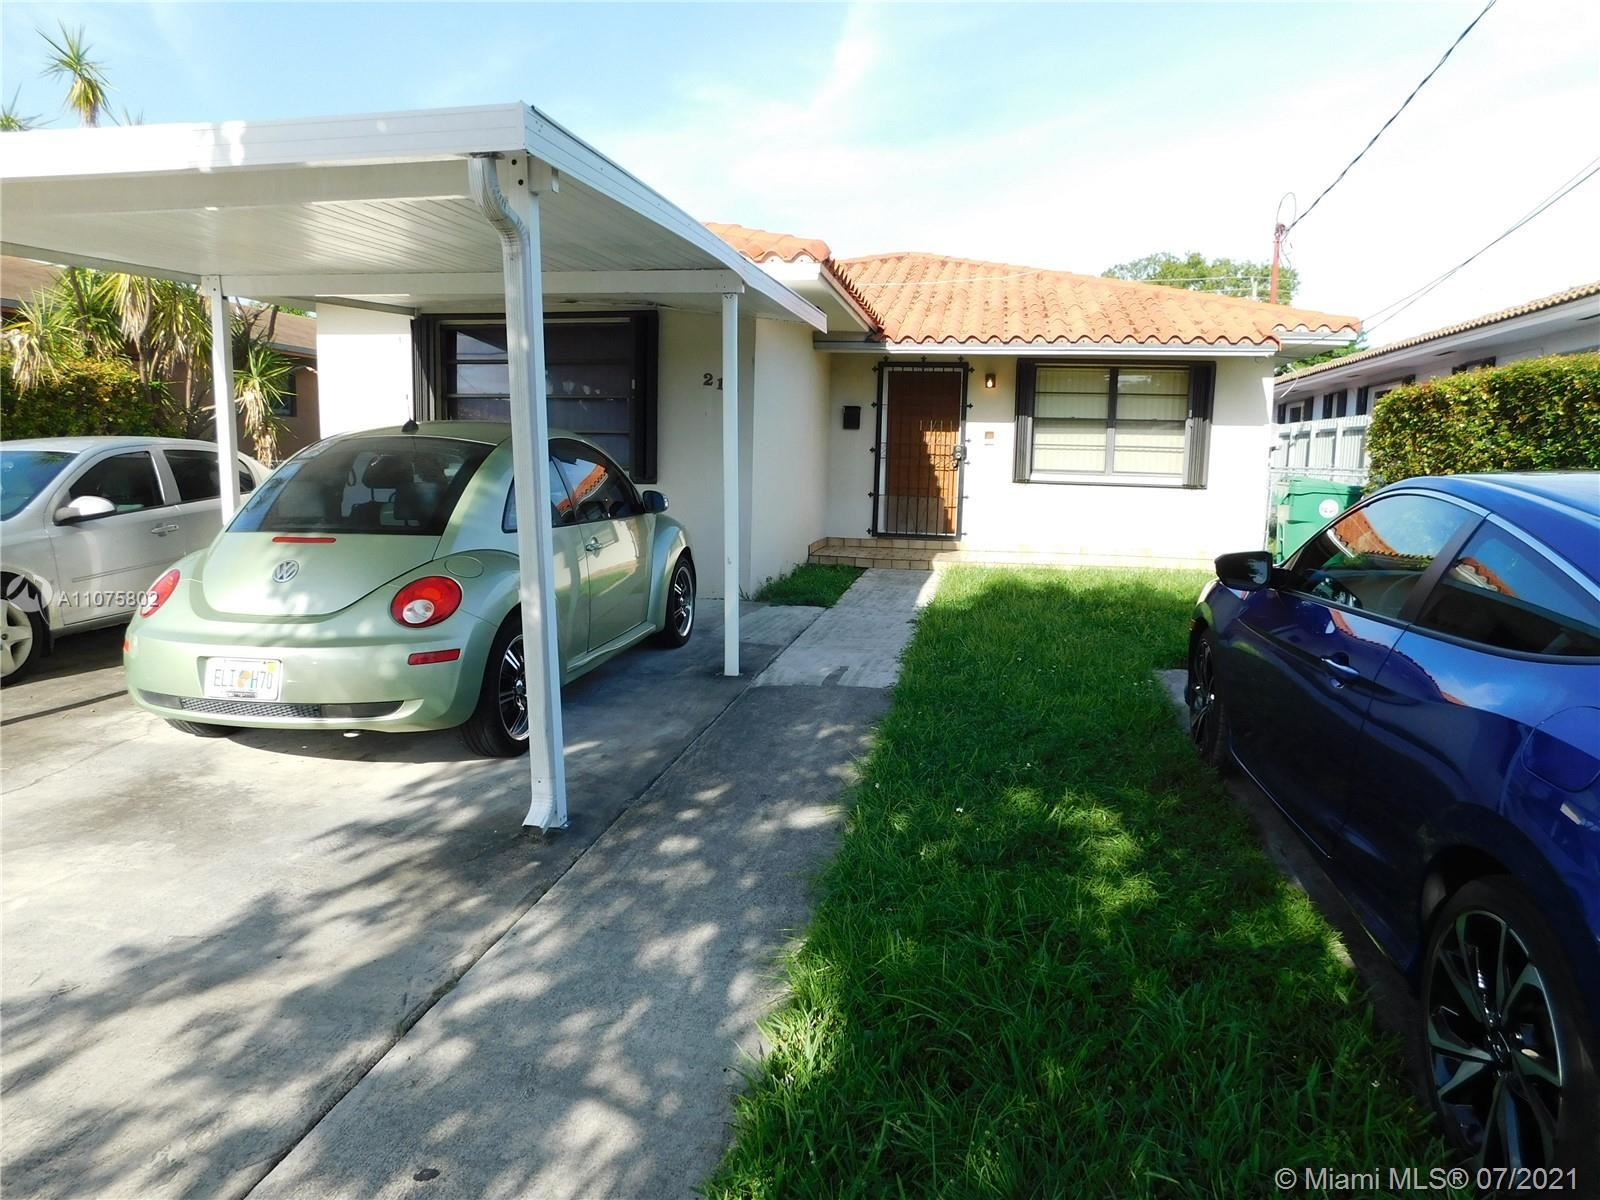 Photo of 215 NW 58th Ct, Miami, FL 33126 (MLS # A11075802)